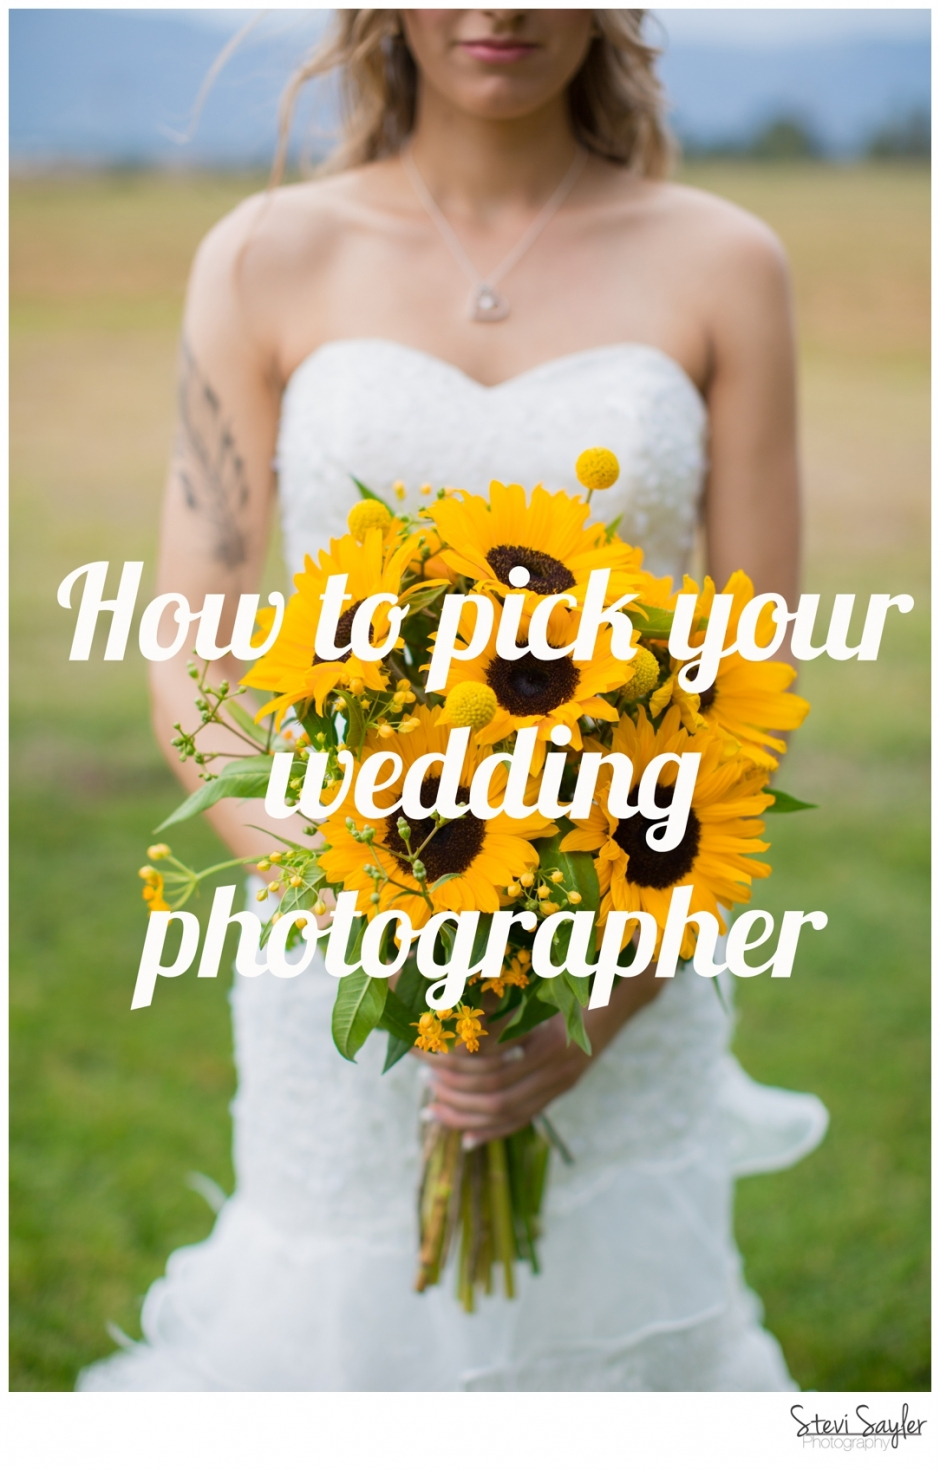 Stevi Sayler Photography - How To Pick You Wedding Photographer